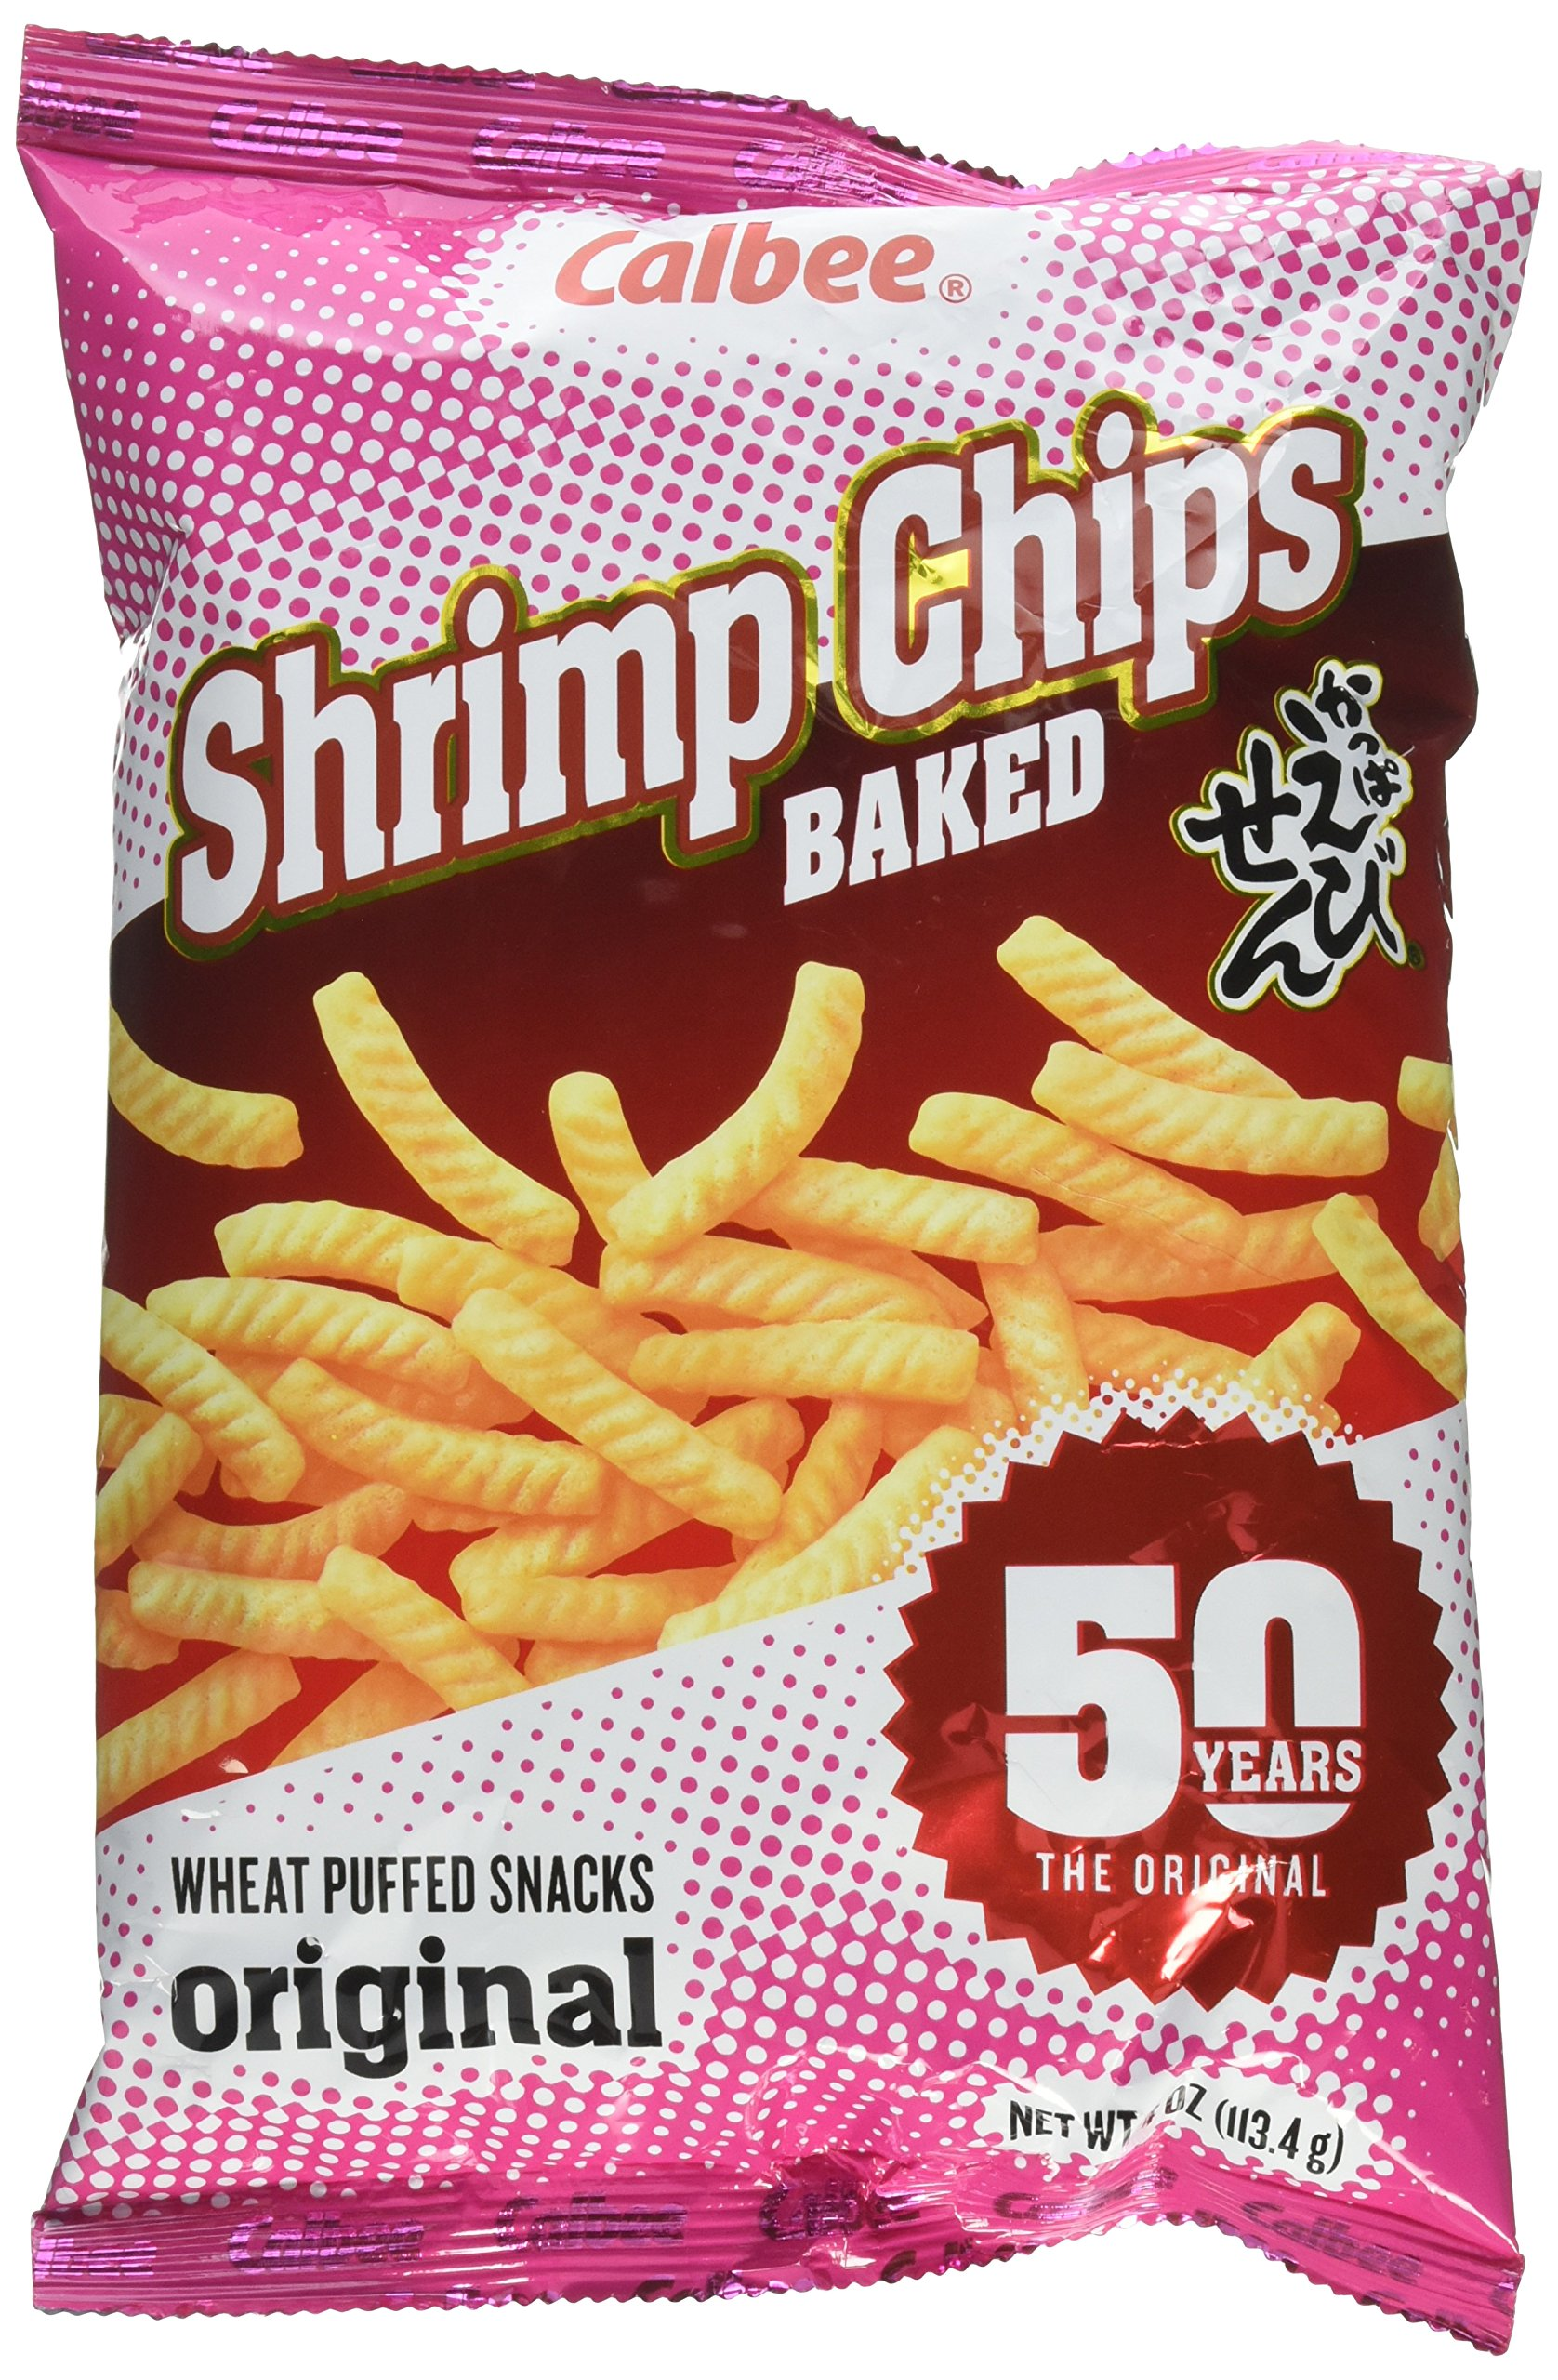 Calbee Shrimp flavored chips baked 4oz (Pack of 6) by Calbee